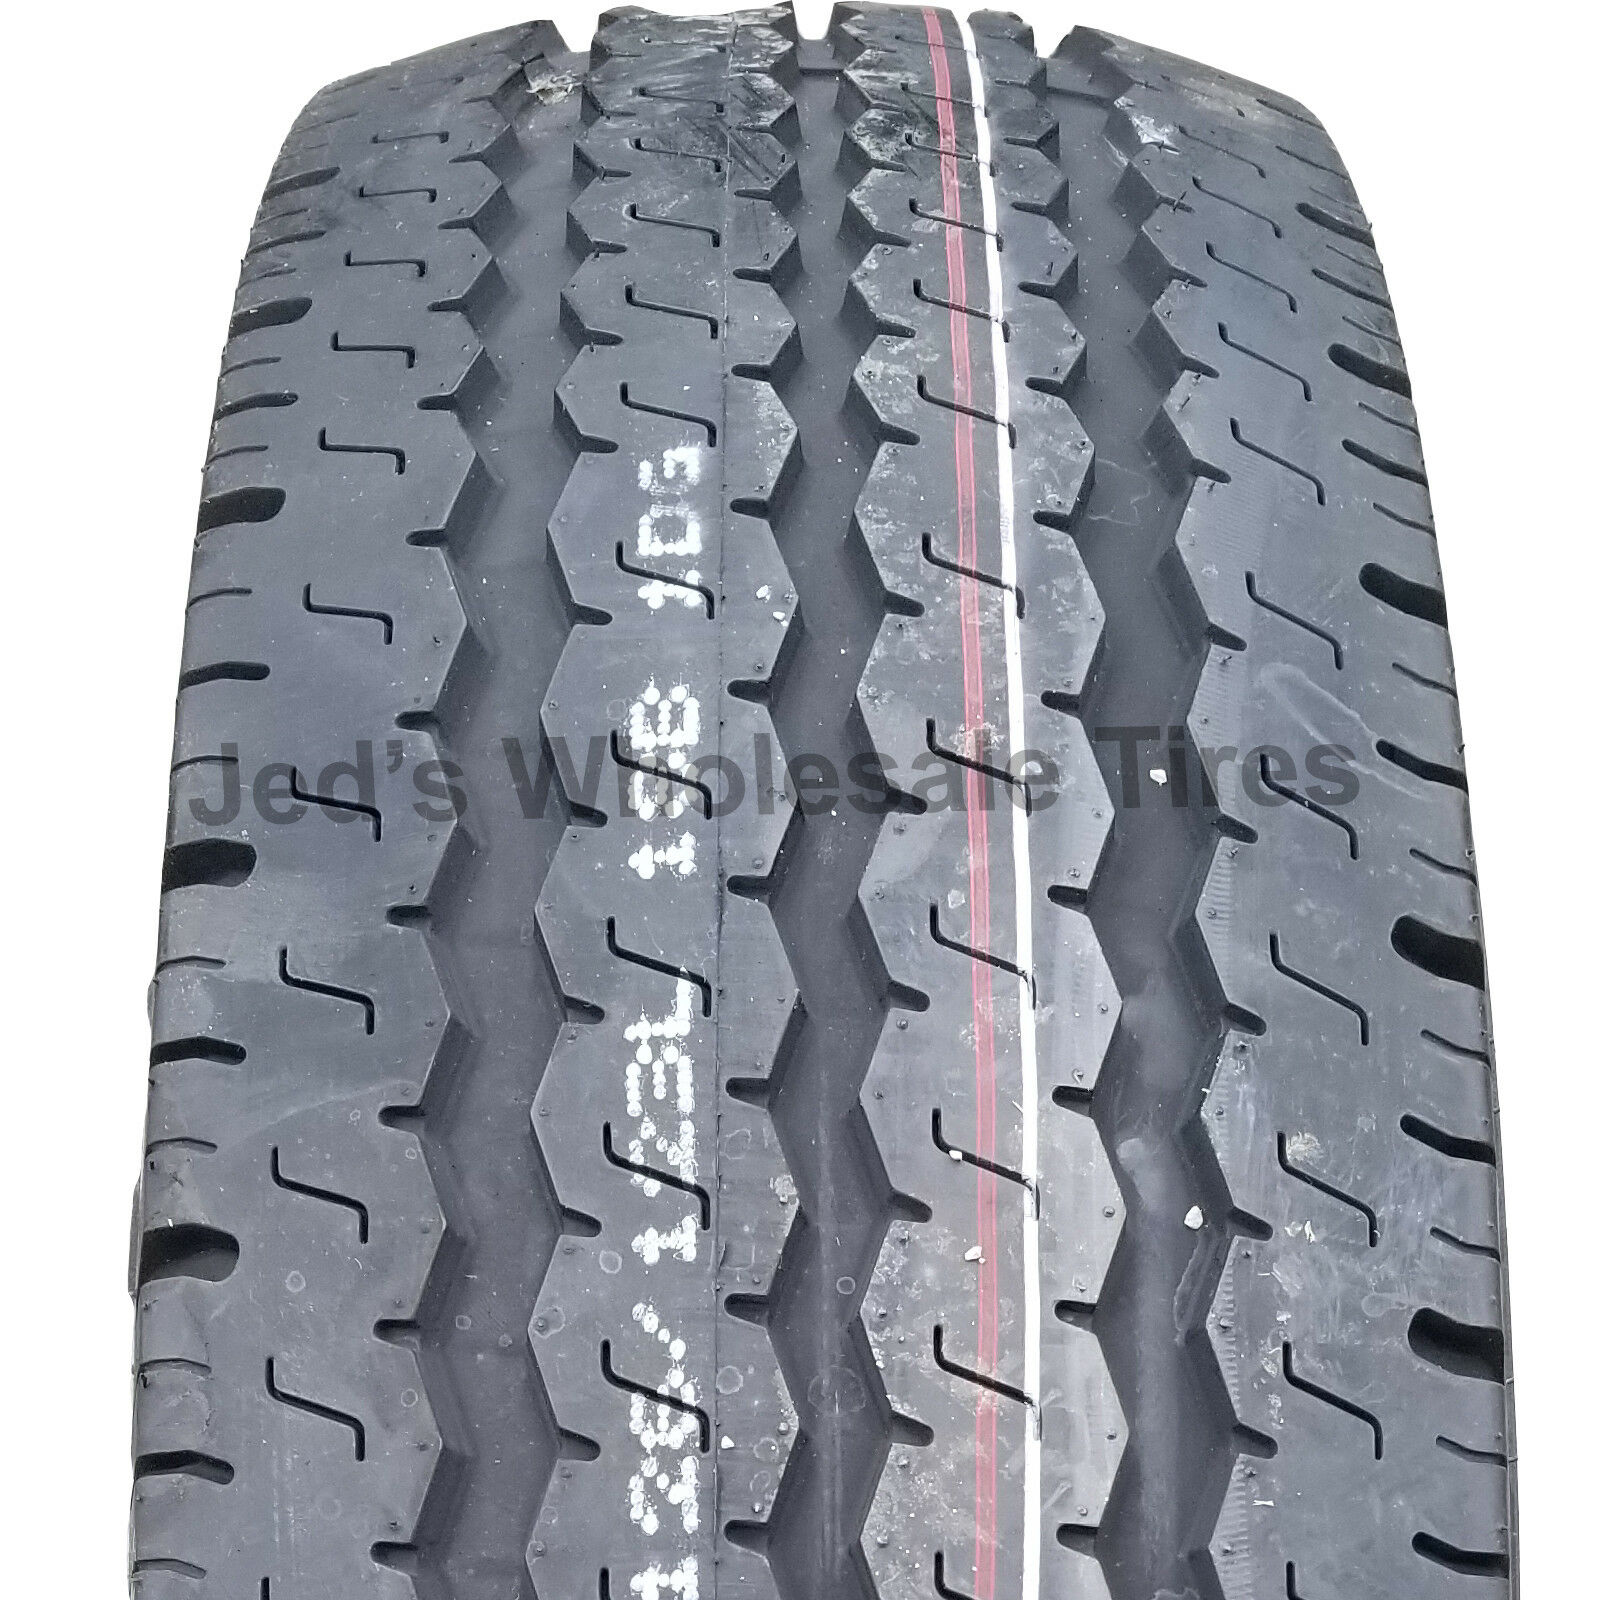 ST 235/85R-16 235/85-16 TRAILER TIRE 14 ply Radial Journey DTAP HEAVY HAULER